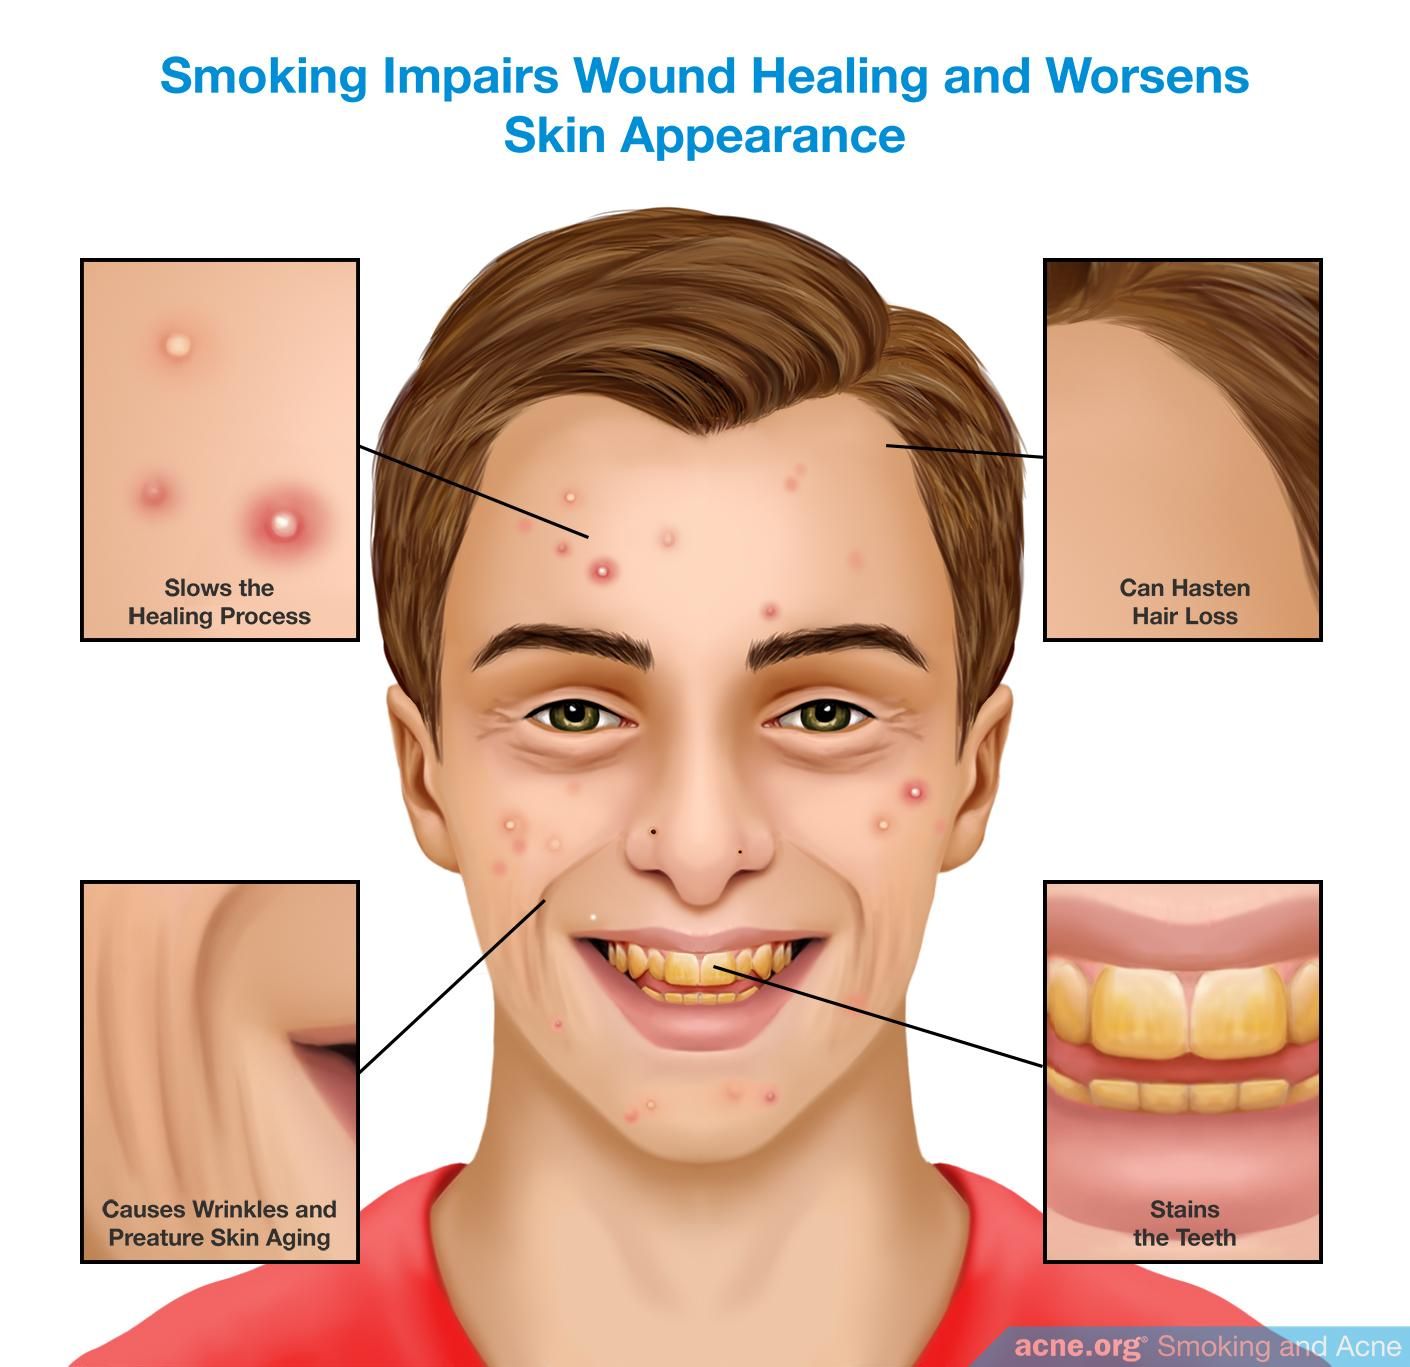 Smoking Impairs Wound Healing and Worsens Skin Appearance